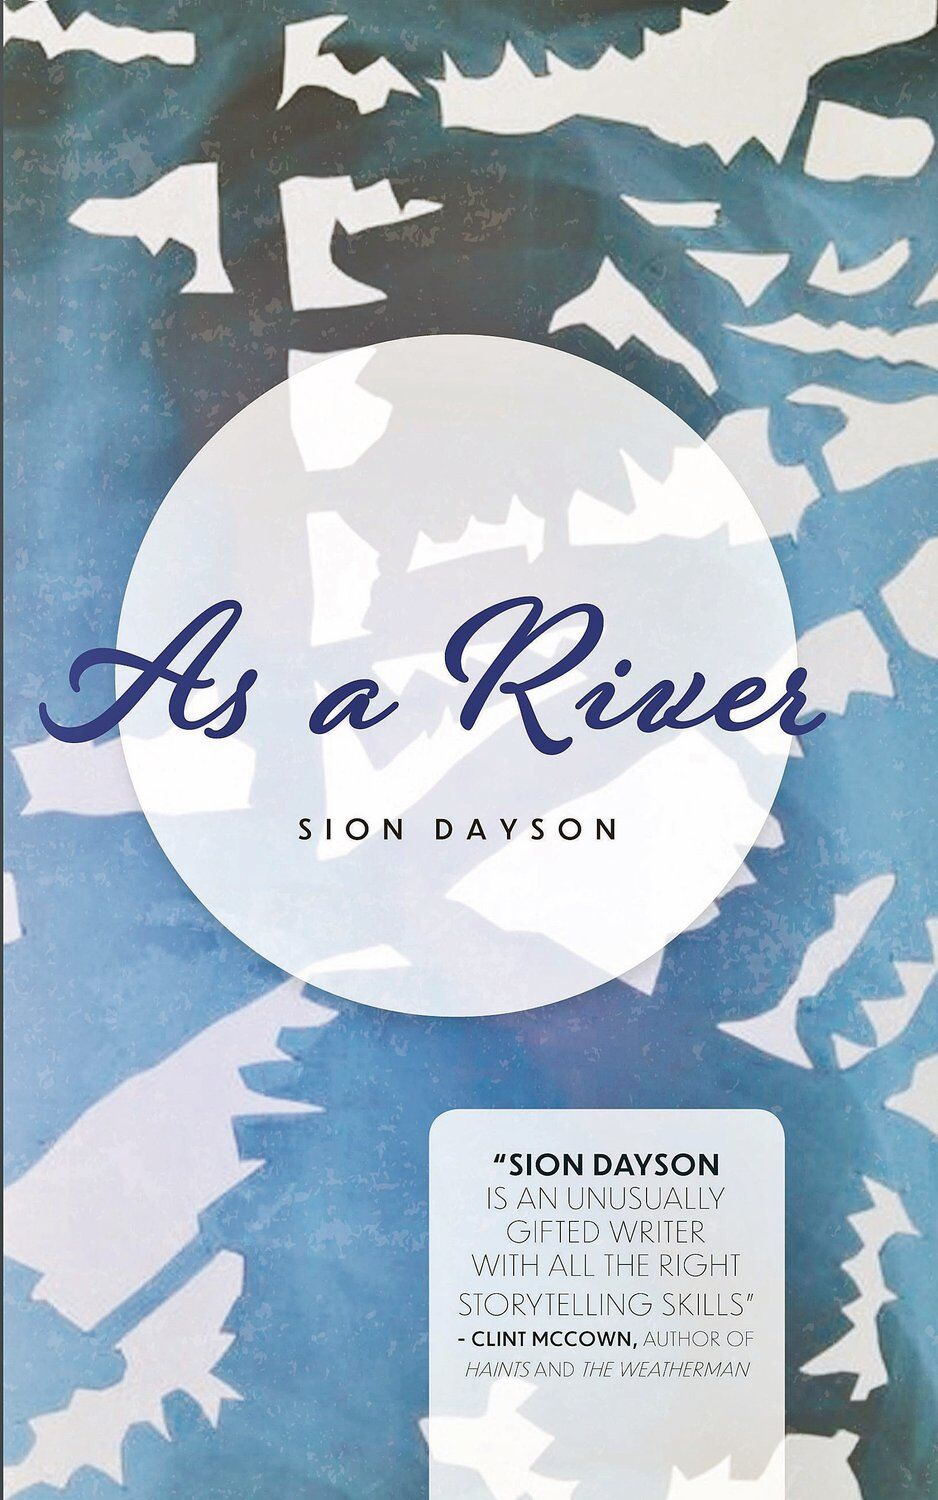 Open Book with Sion Dayson